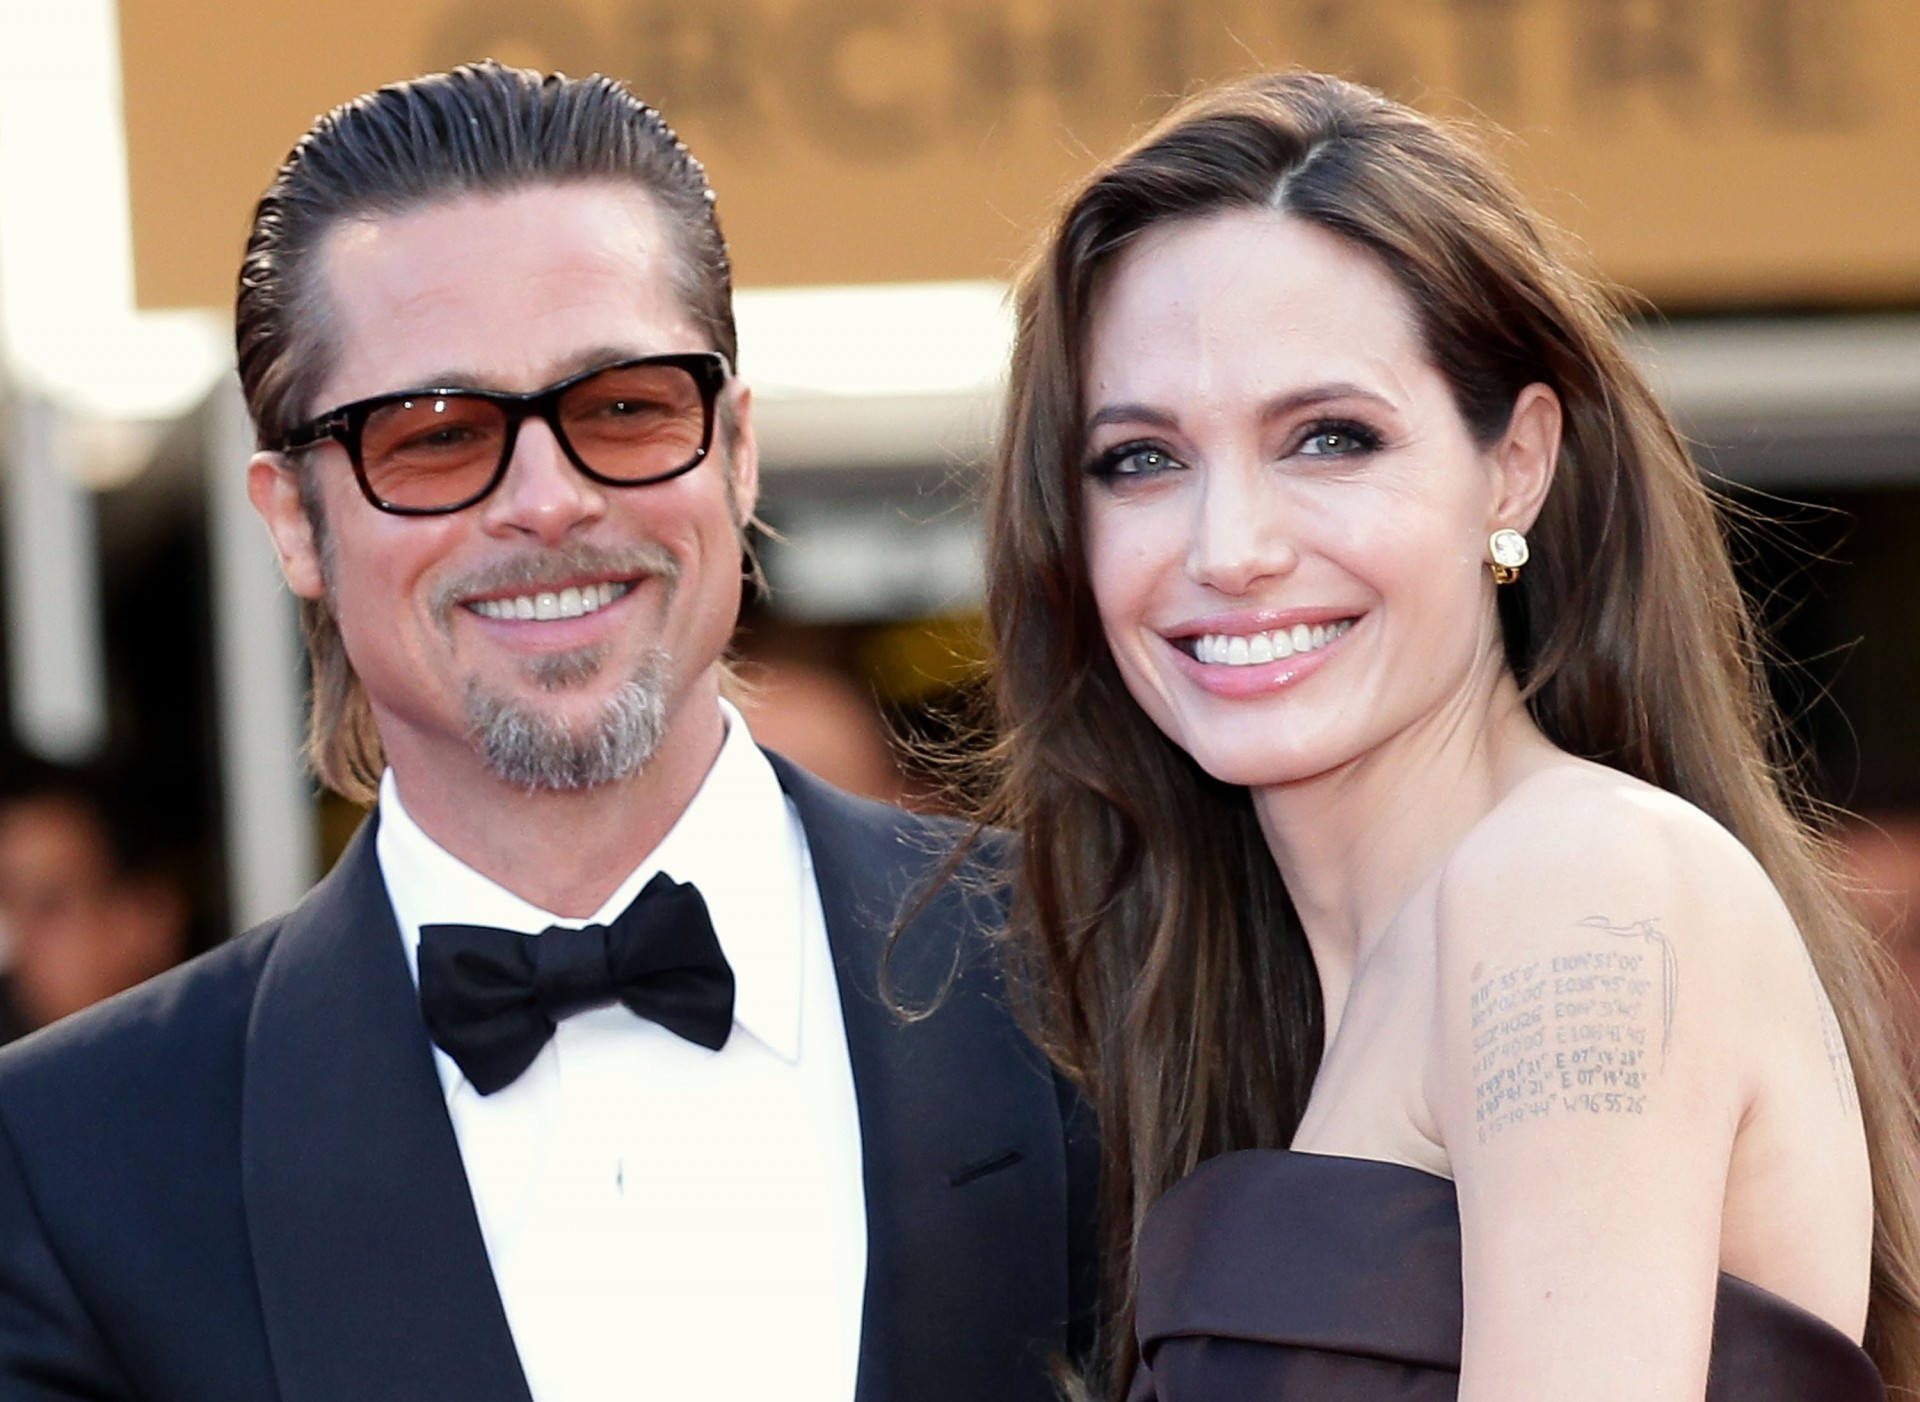 "(FILE PHOTO) Angelina Jolie And Brad Pitt Reported To Have Married At The Weekend In France CANNES, FRANCE - MAY 16: Angelina Jolie (R) and Brad Pitt attend ""The Tree Of Life"" premiere during the 64th Annual Cannes Film Festival at Palais des Festivals on May 16, 2011 in Cannes, France. (Photo by Andreas Rentz/Getty Images)"